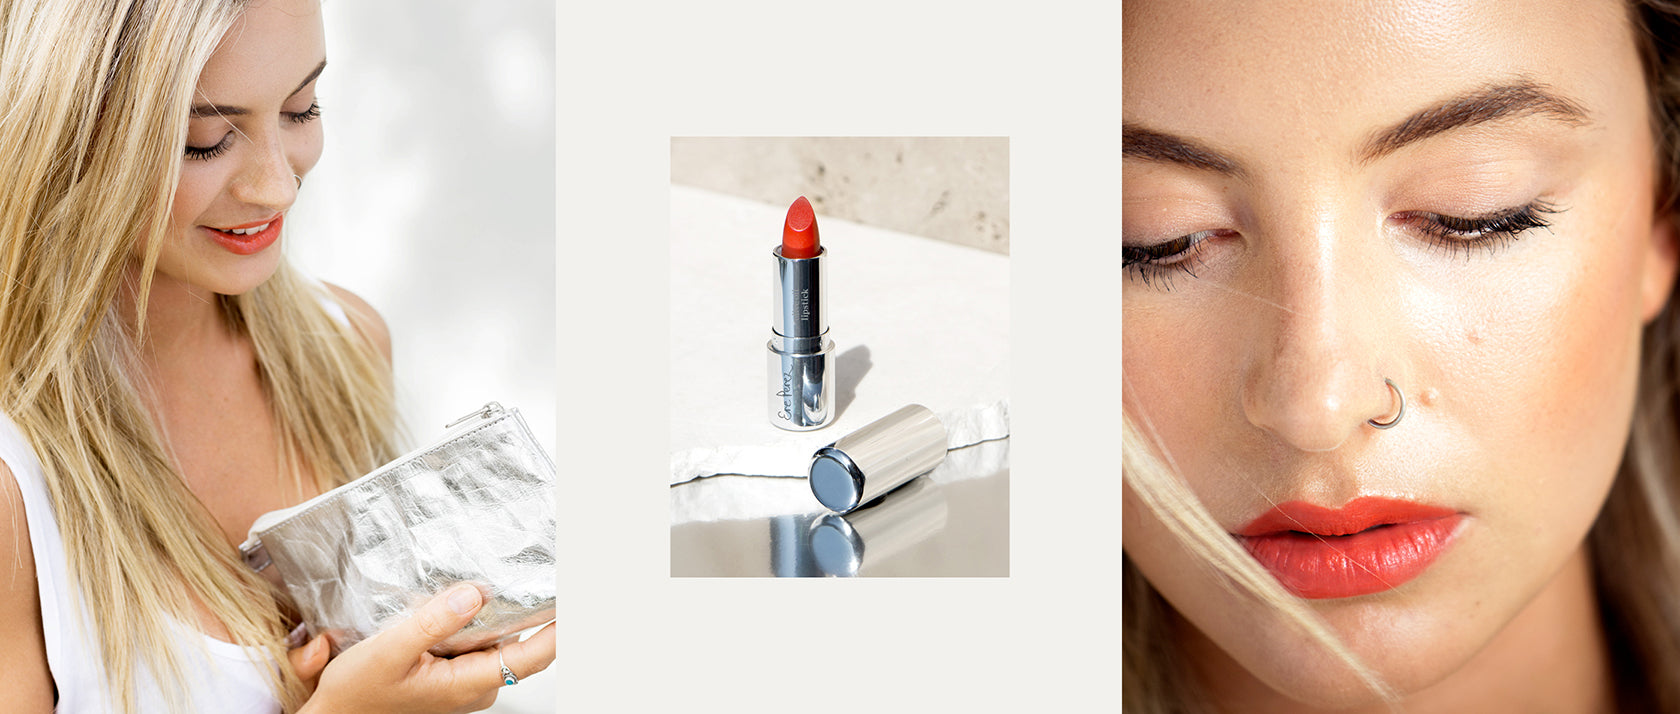 EP_Blog_Banners_LipstickLady3